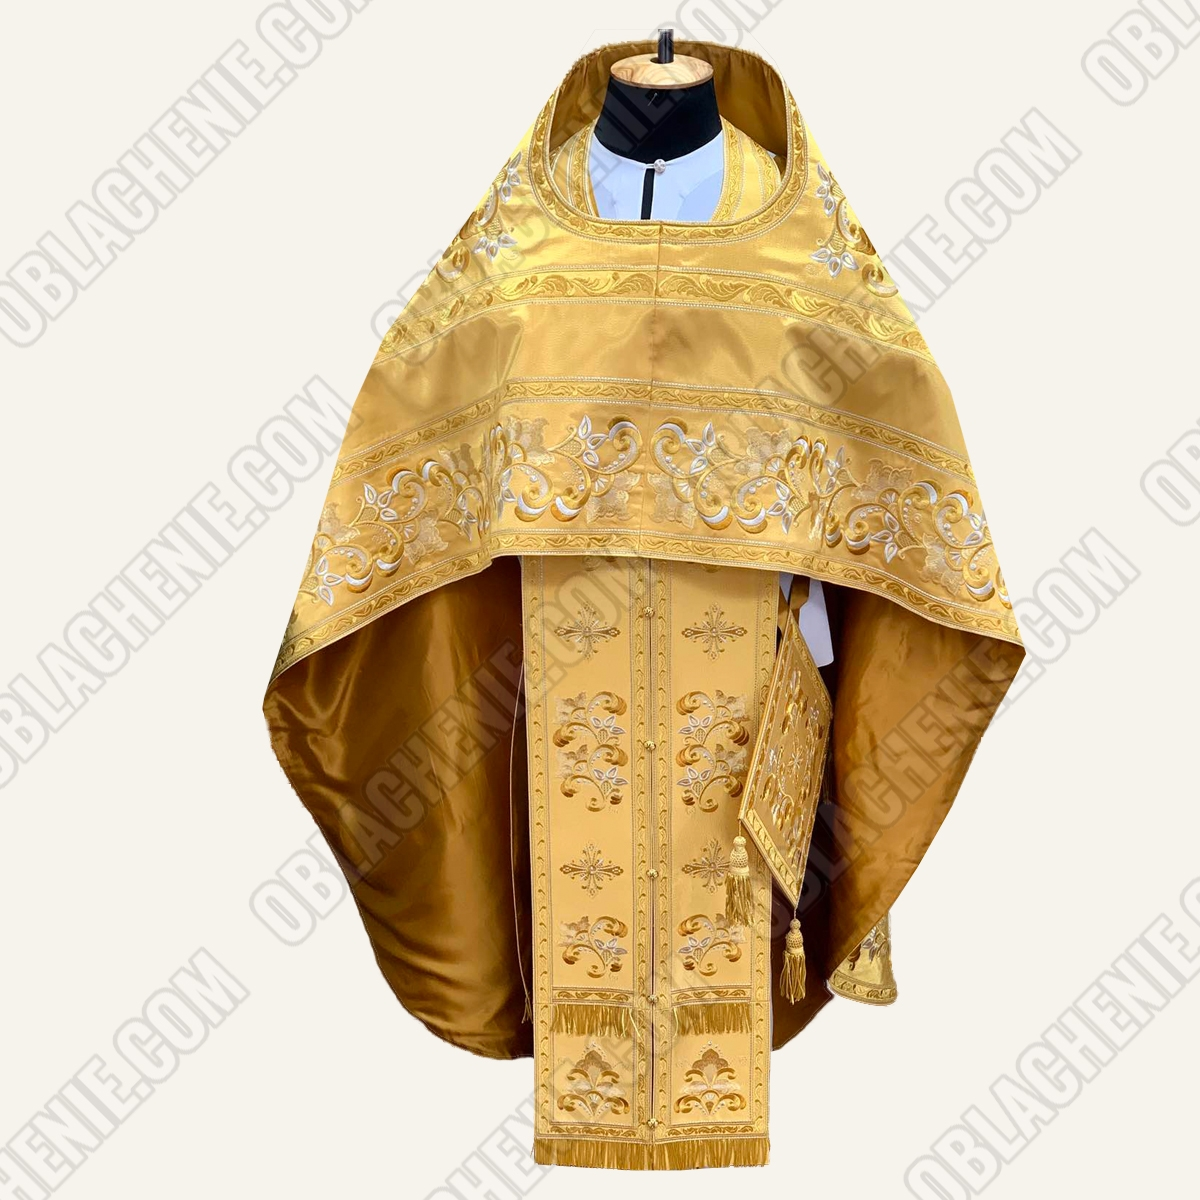 EMBROIDERED PRIEST'S VESTMENTS 11078